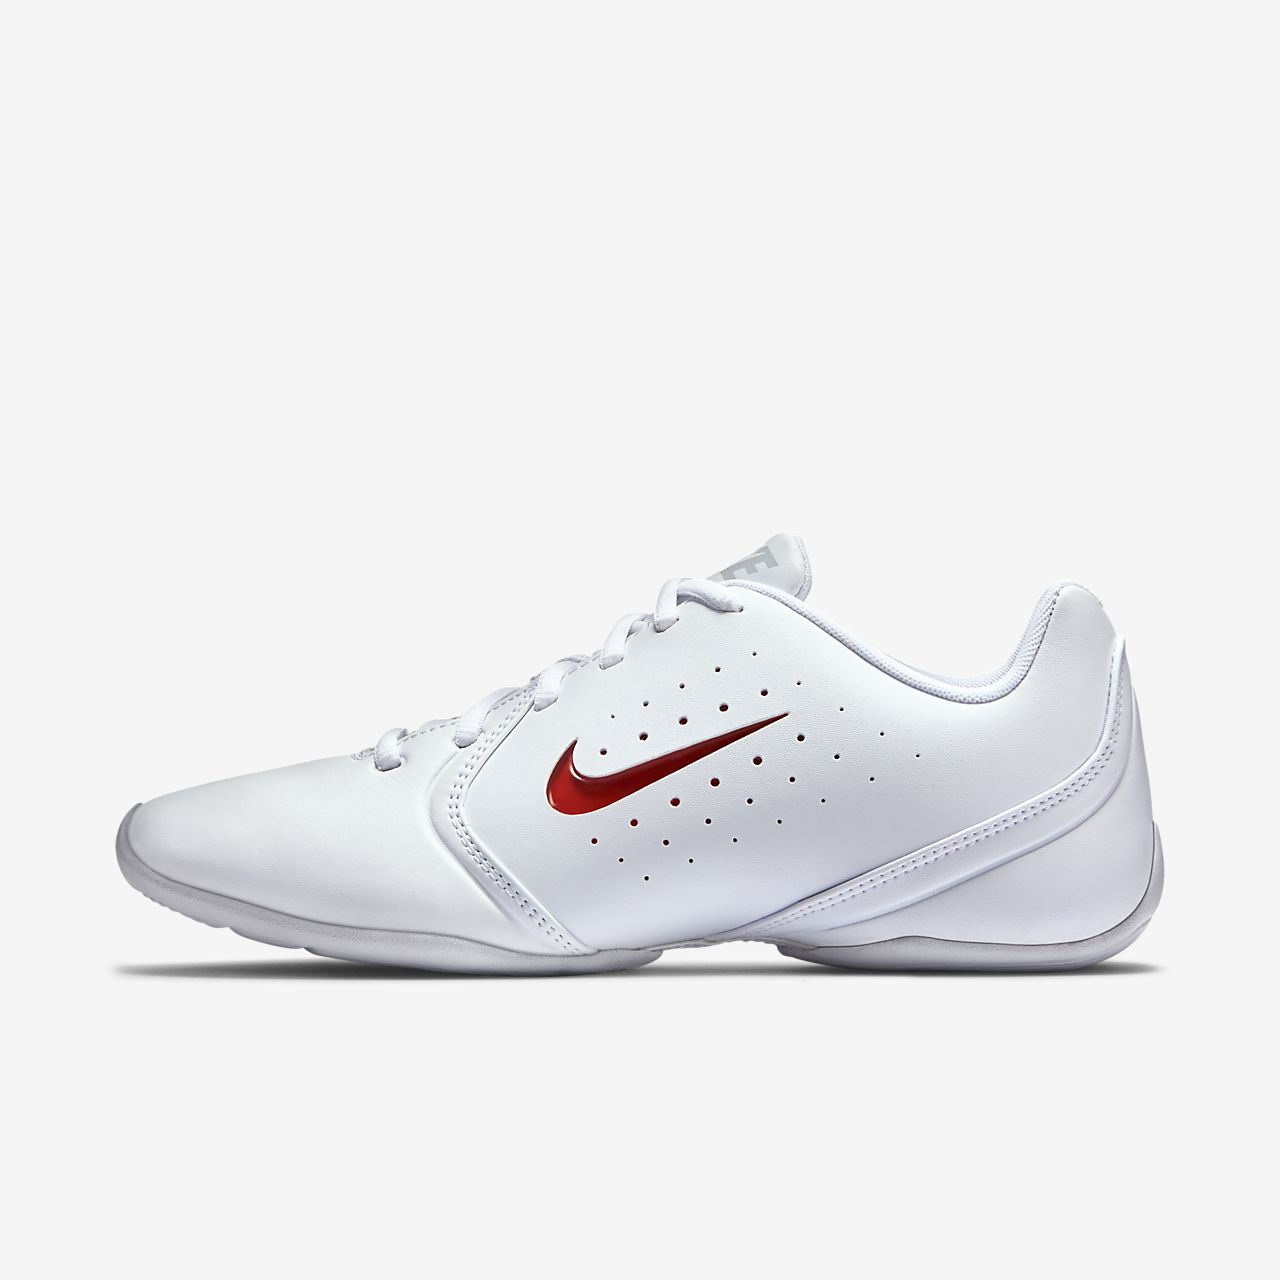 air nike shoes for school 2017 kissasian cheer 851354